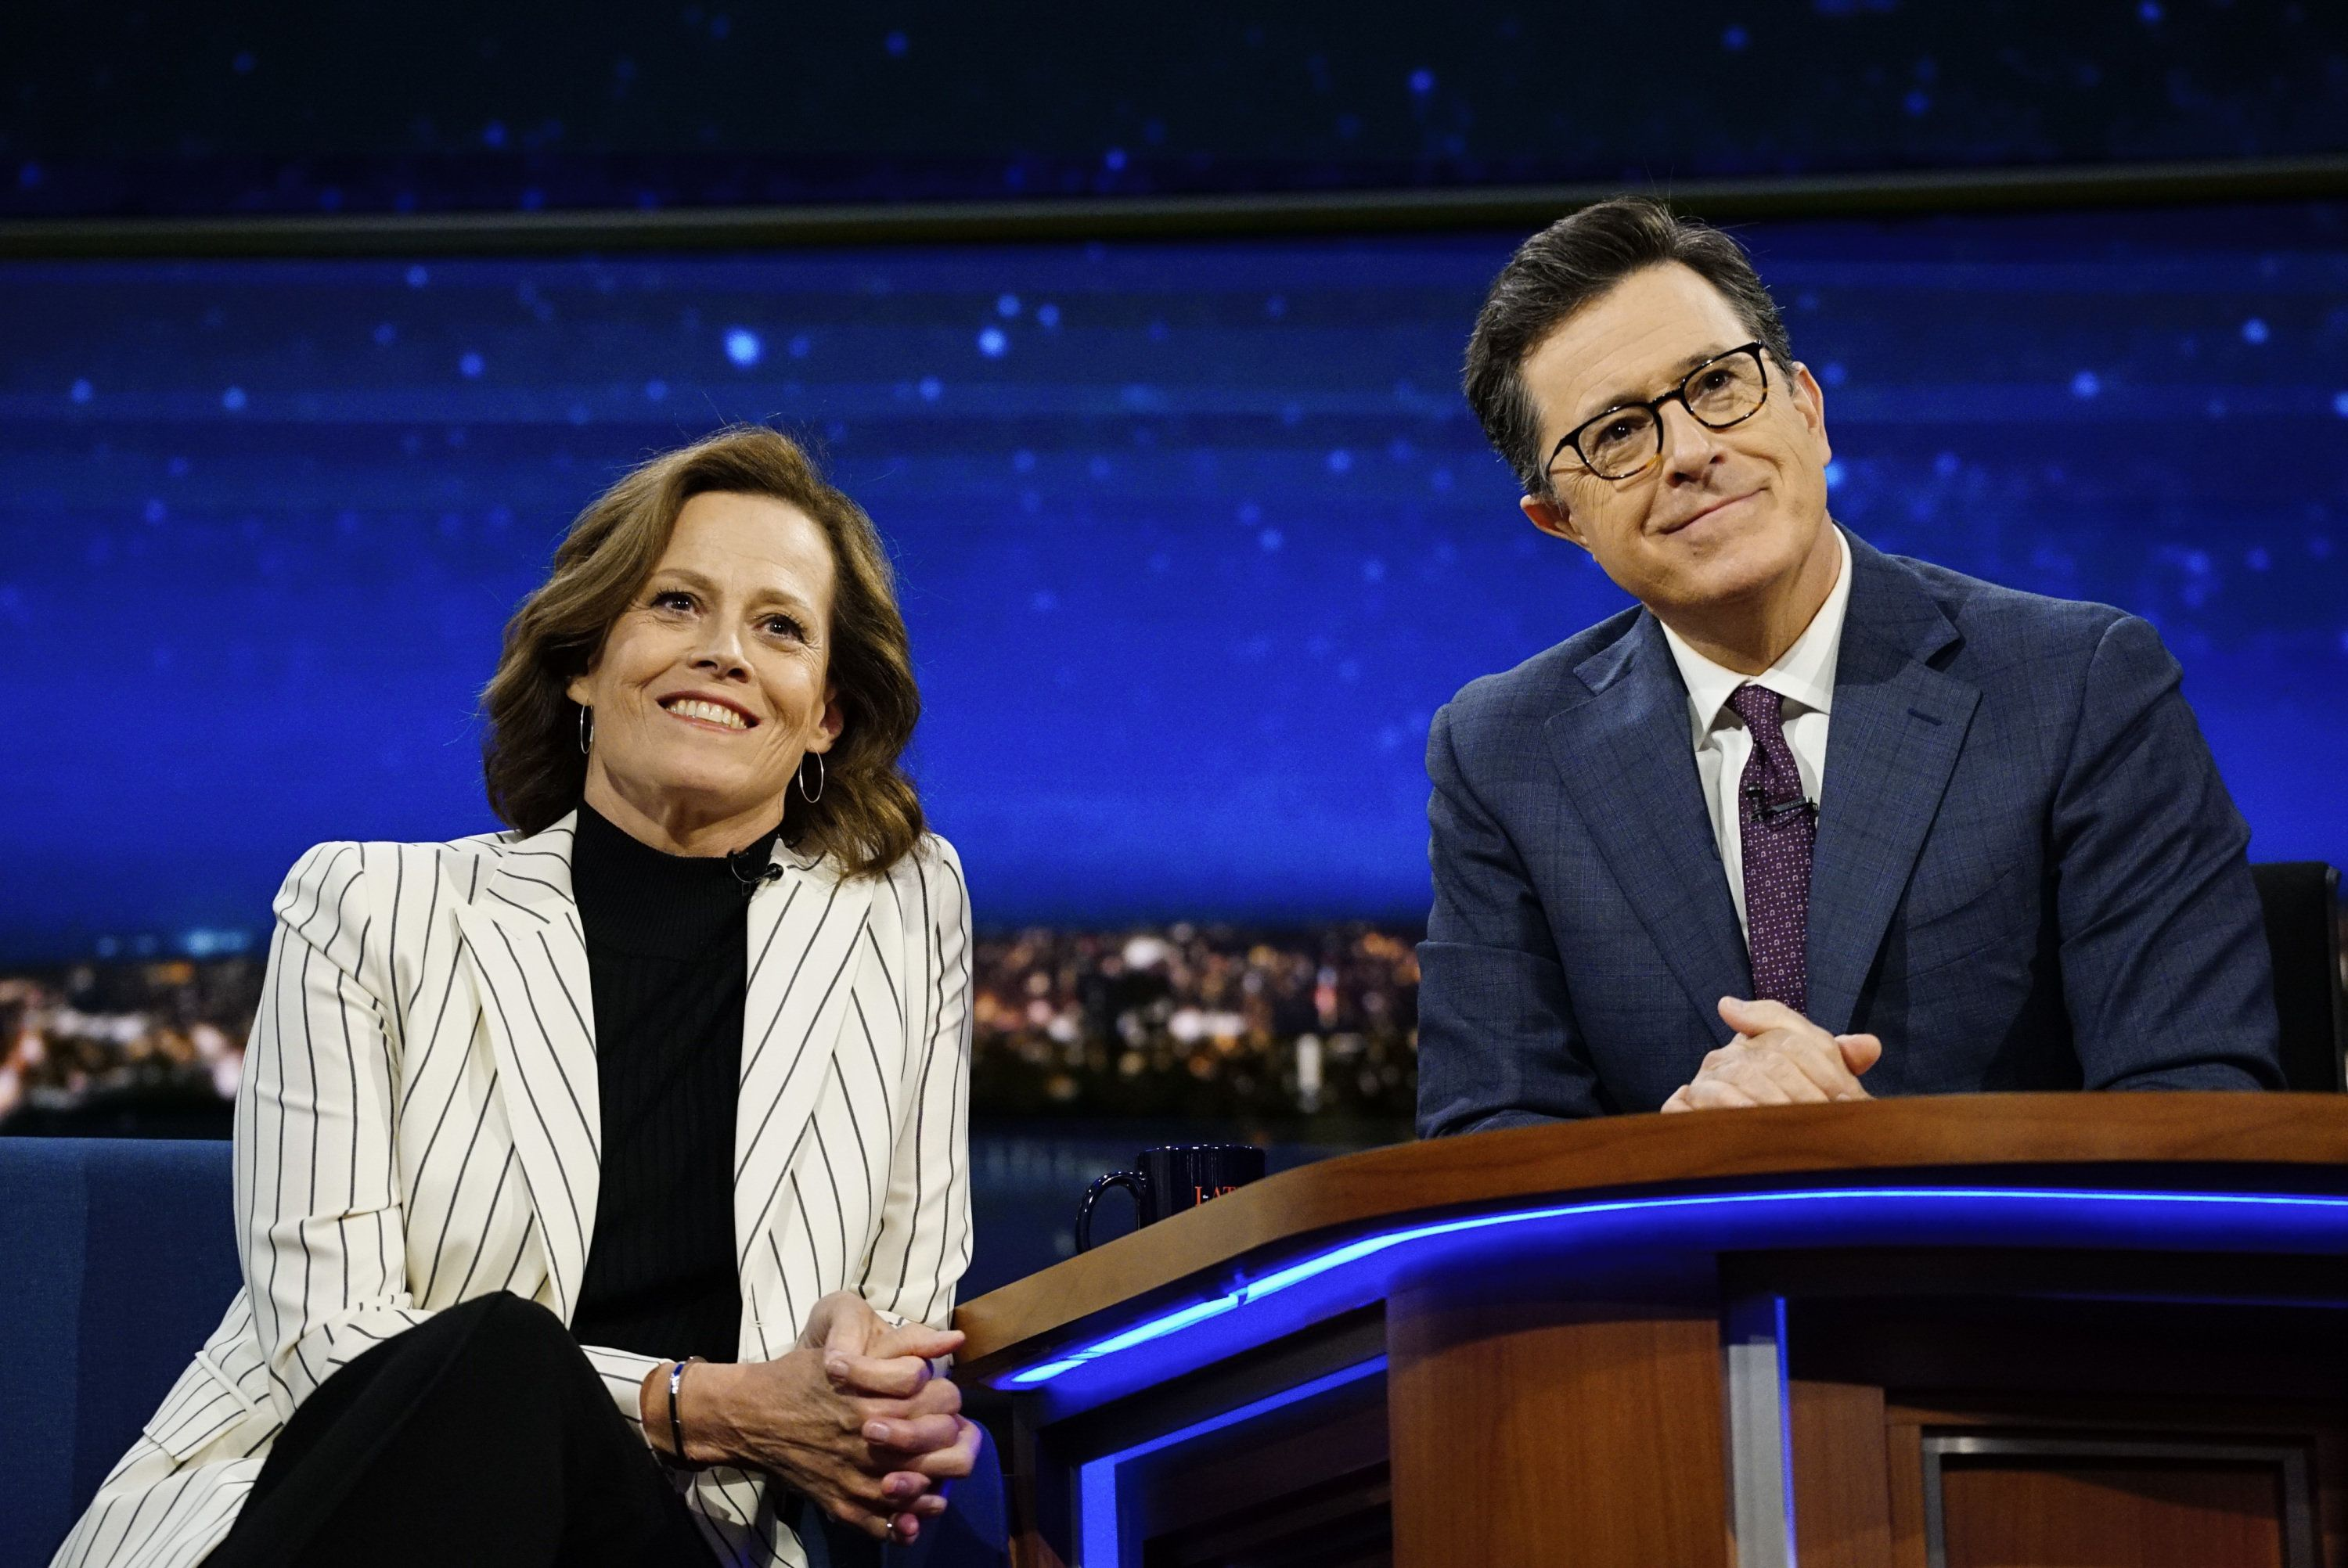 NEW YORK - APRIL 5: The Late Show with Stephen Colbert airing Wednesday, April 5, 2017. Pictured L-R: Sigourney Weaver and Stephen Colbert. (Photo by Gail Schulman/CBS via Getty Images)